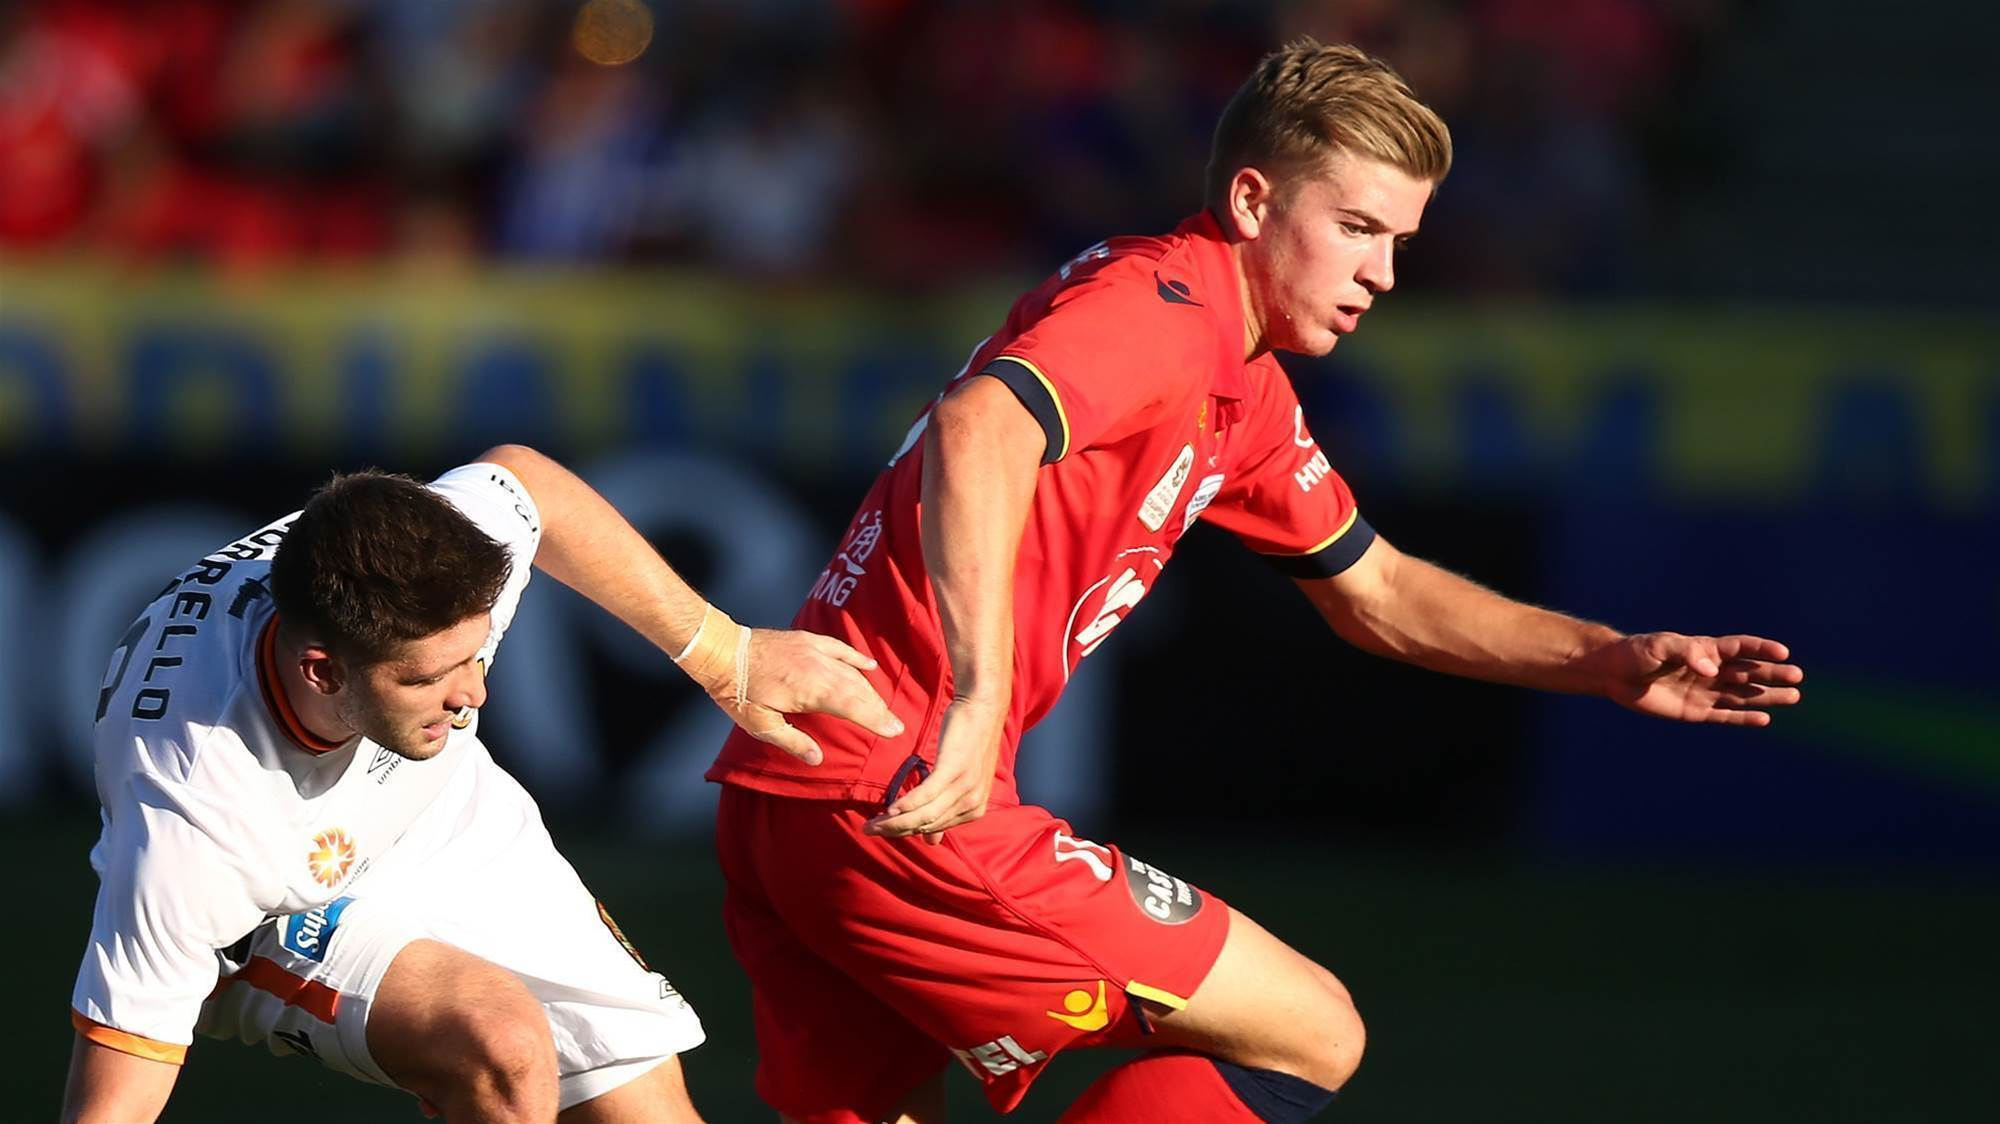 Kewell to McGree: You only get one chance!